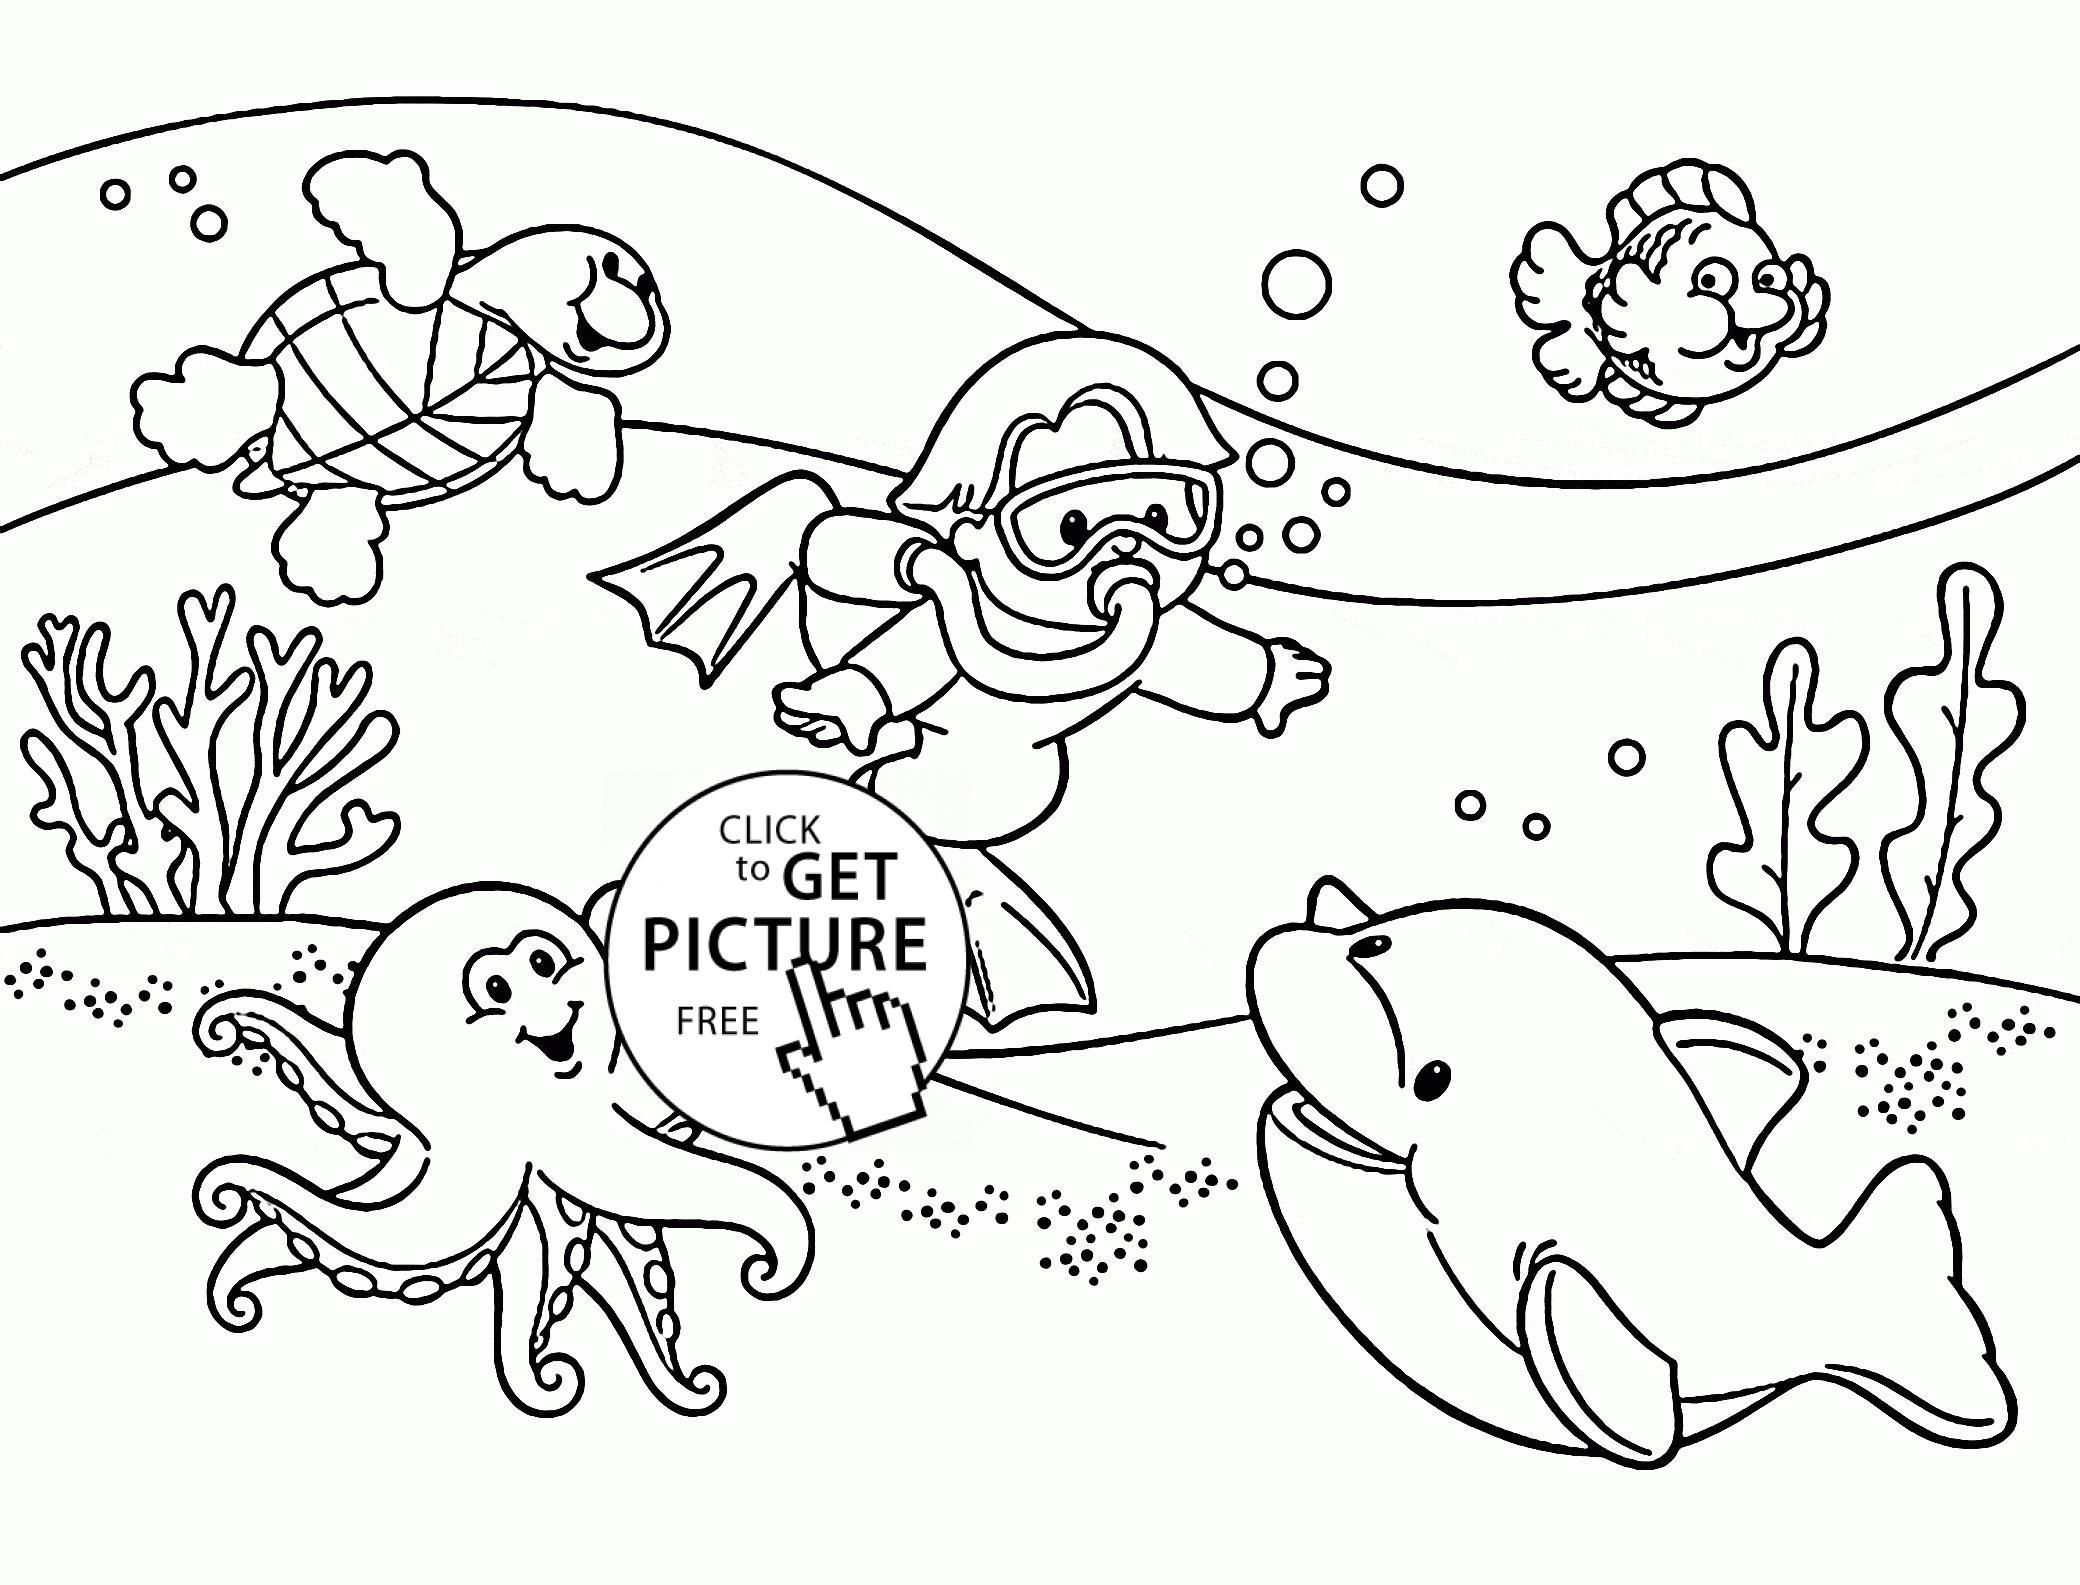 Underwater Plants Coloring Pages At Getdrawings